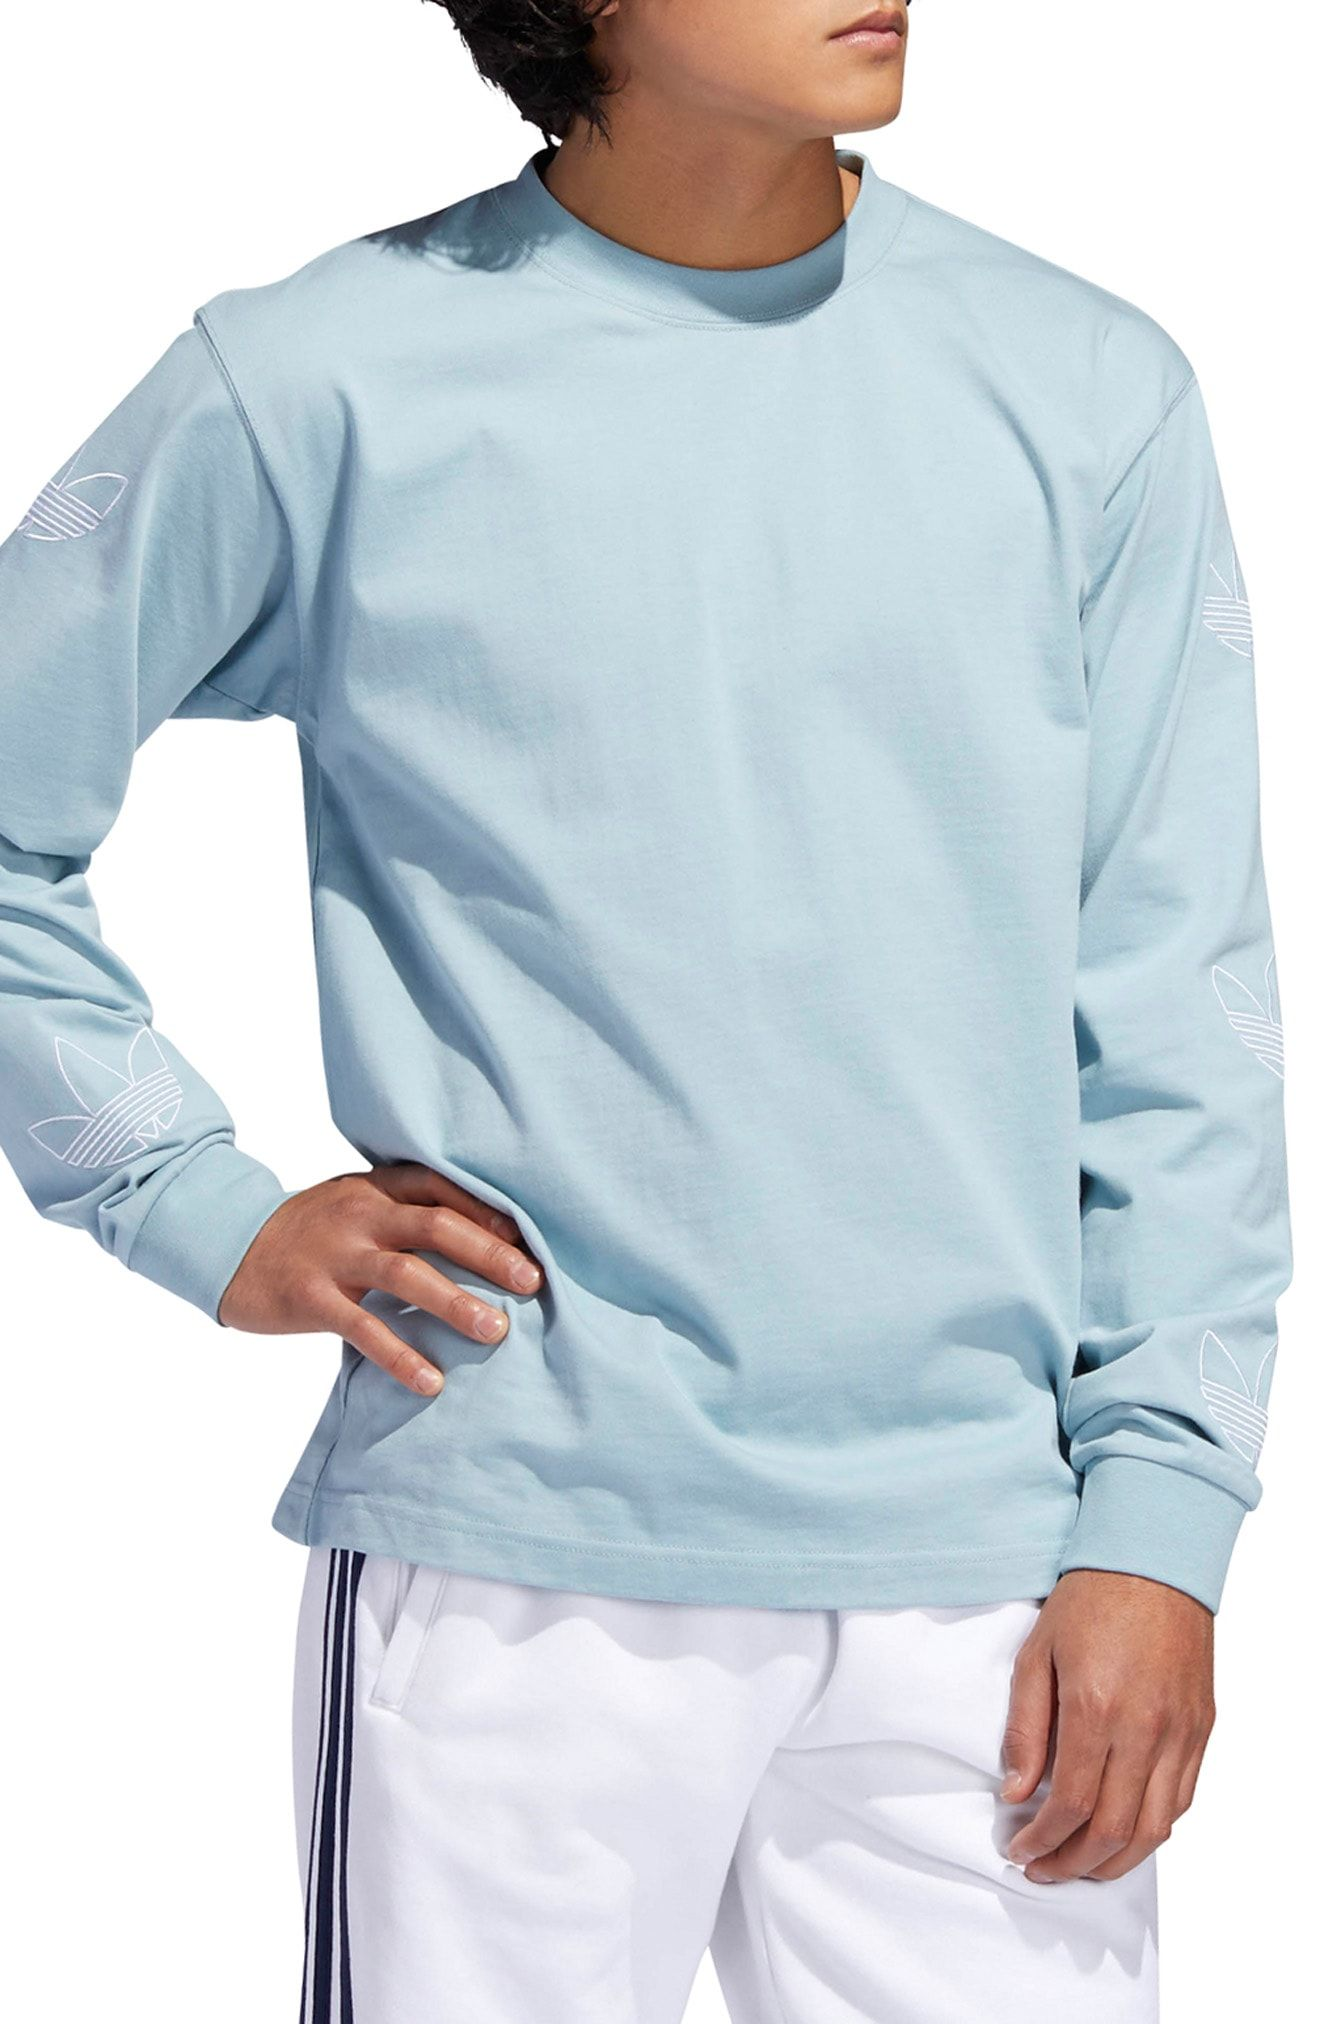 sneakers for cheap 8b305 700a9 ADIDAS ORIGINALS EMBROIDERED TREFOIL LONG SLEEVE T-SHIRT. adidasoriginals  cloth